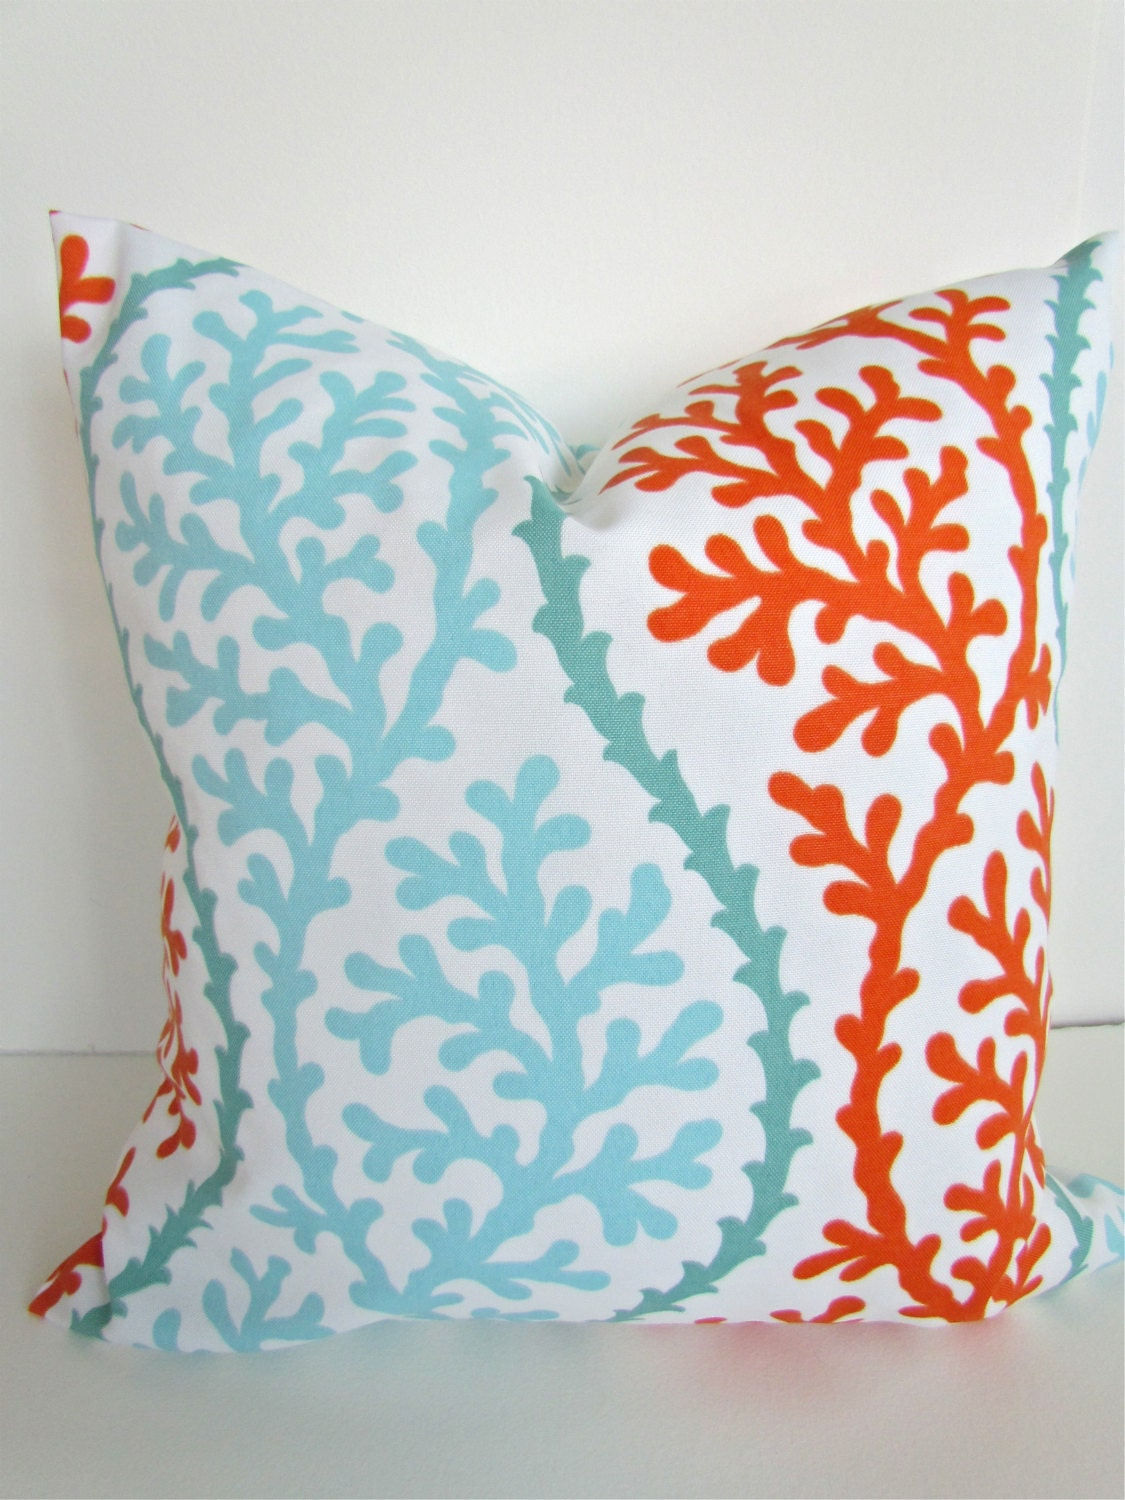 Throw Pillows Coral : Coral and Mint PILLOWS CORAL Throw Pillow Covers 20x20 18 16